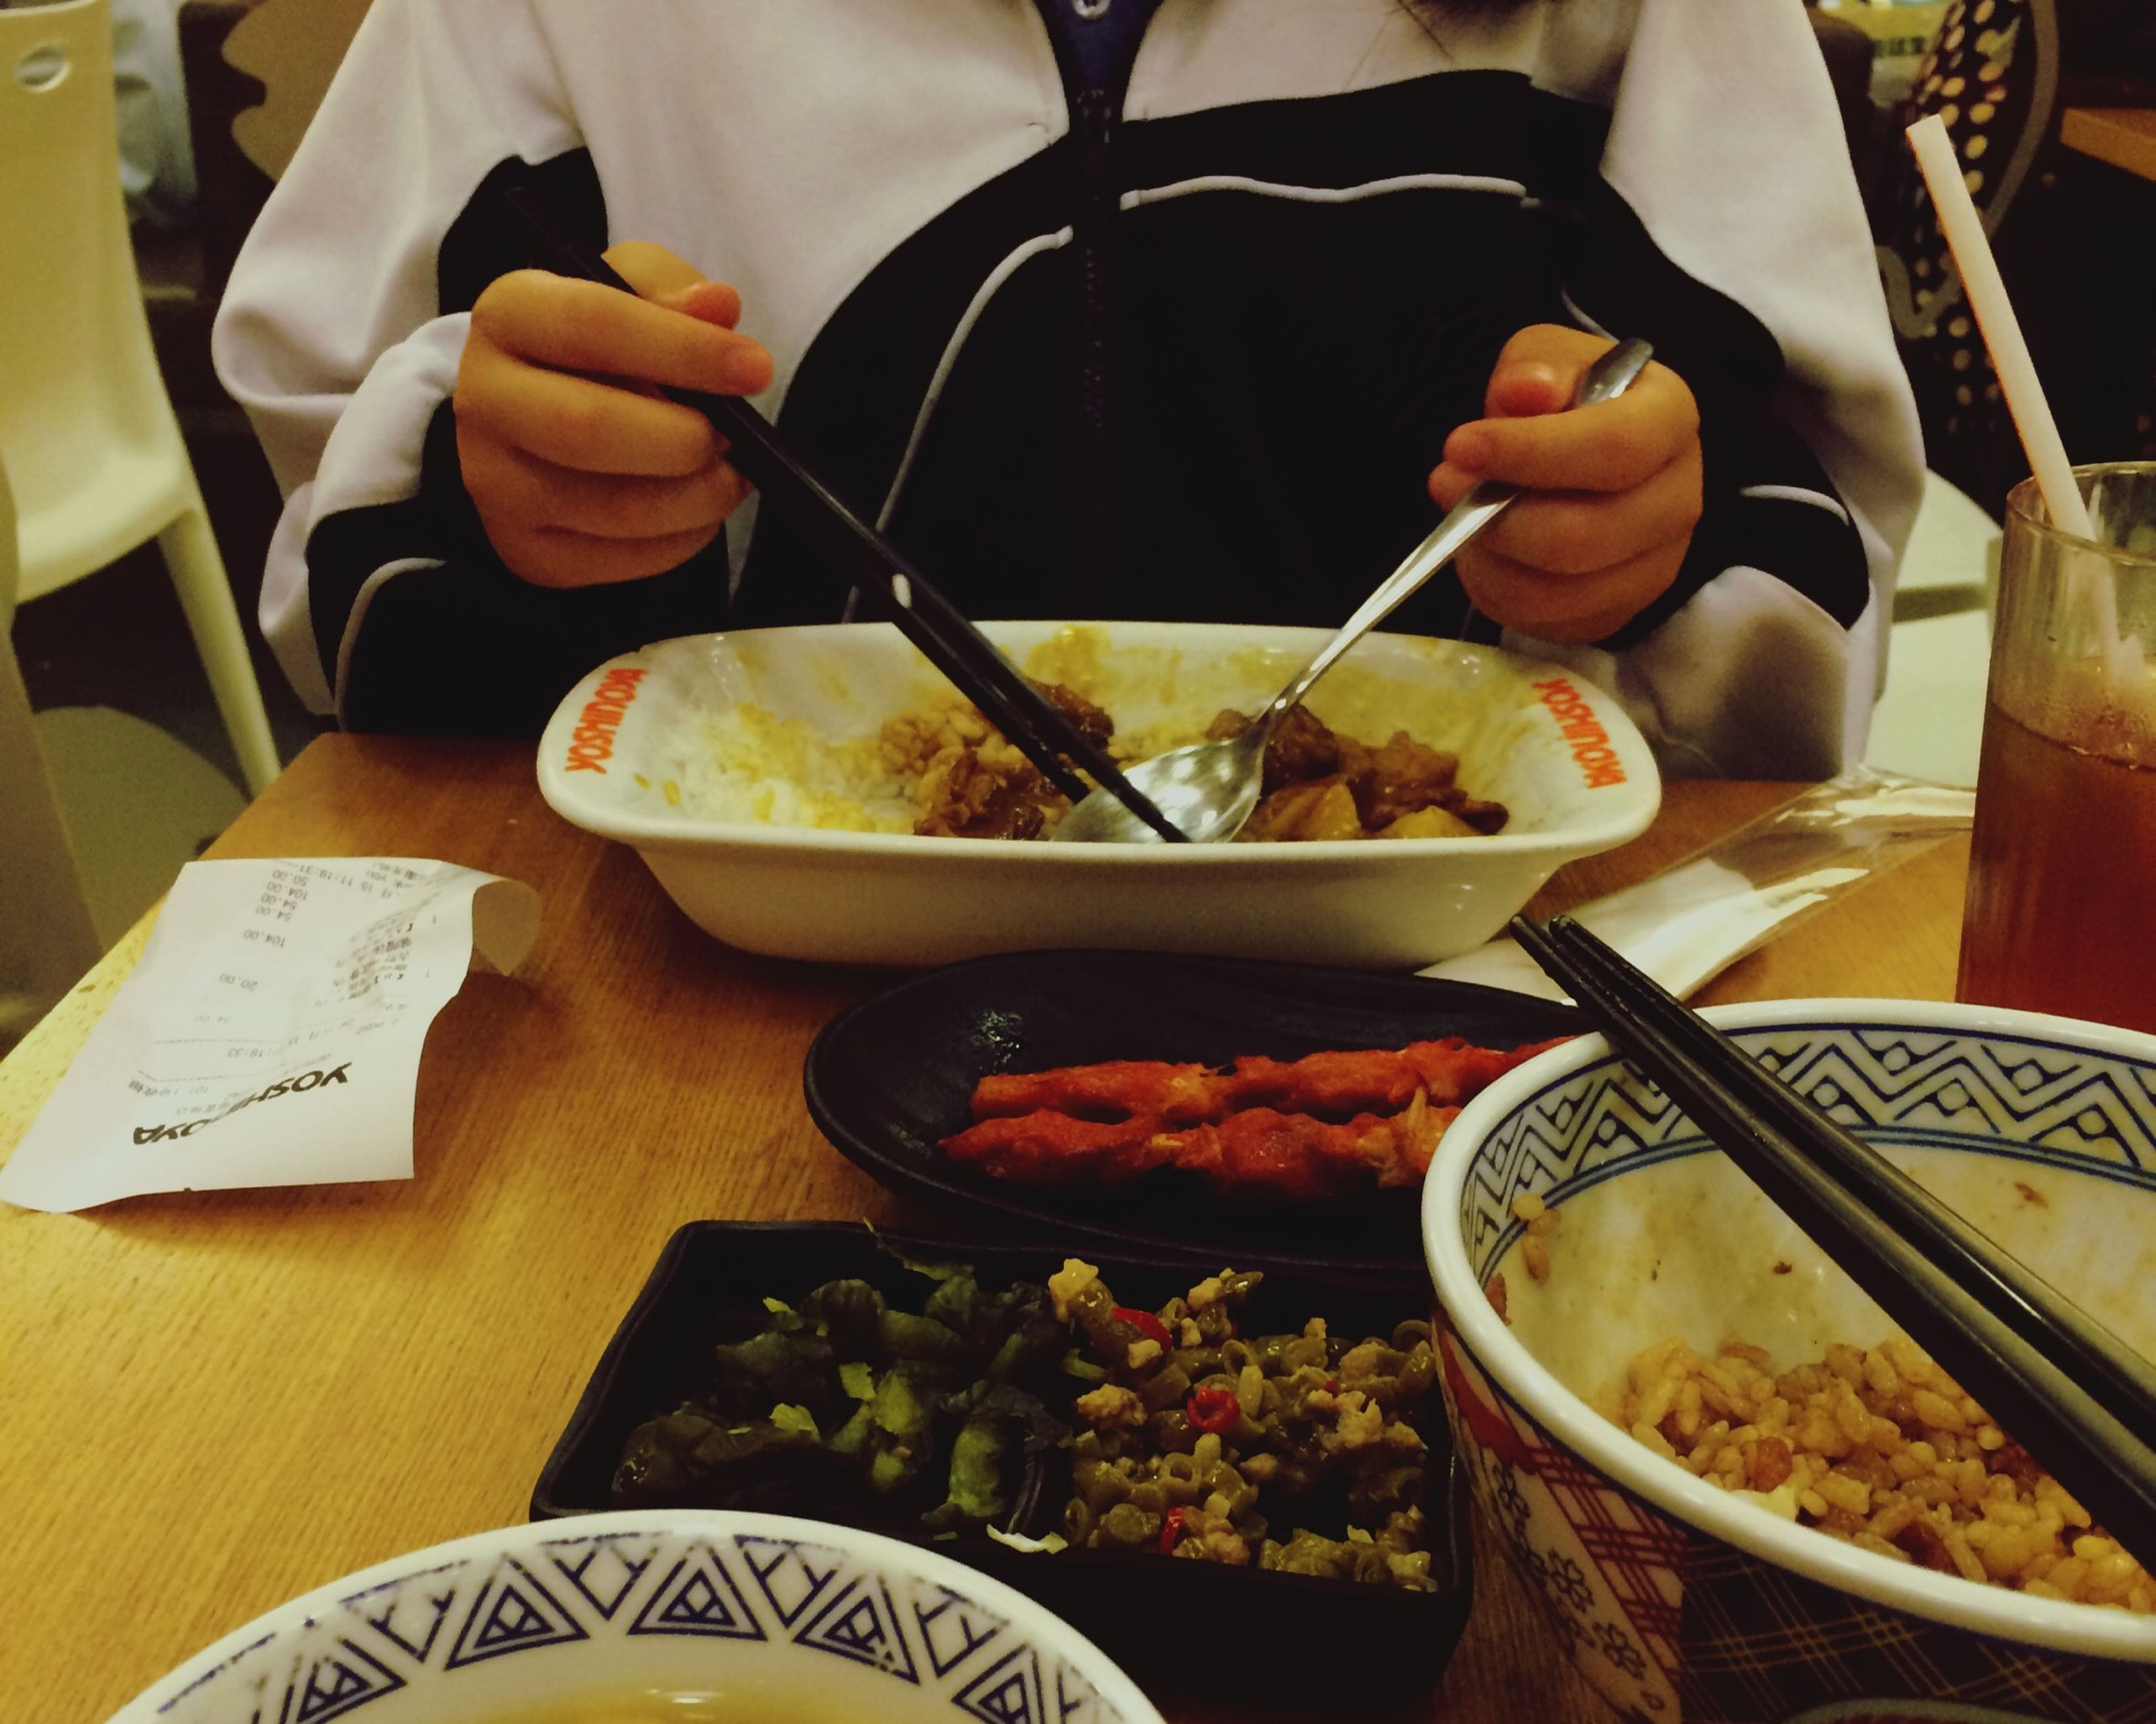 food and drink, food, freshness, indoors, table, healthy eating, ready-to-eat, bowl, high angle view, plate, still life, meal, spoon, vegetable, one person, serving size, fork, drink, indulgence, chopsticks